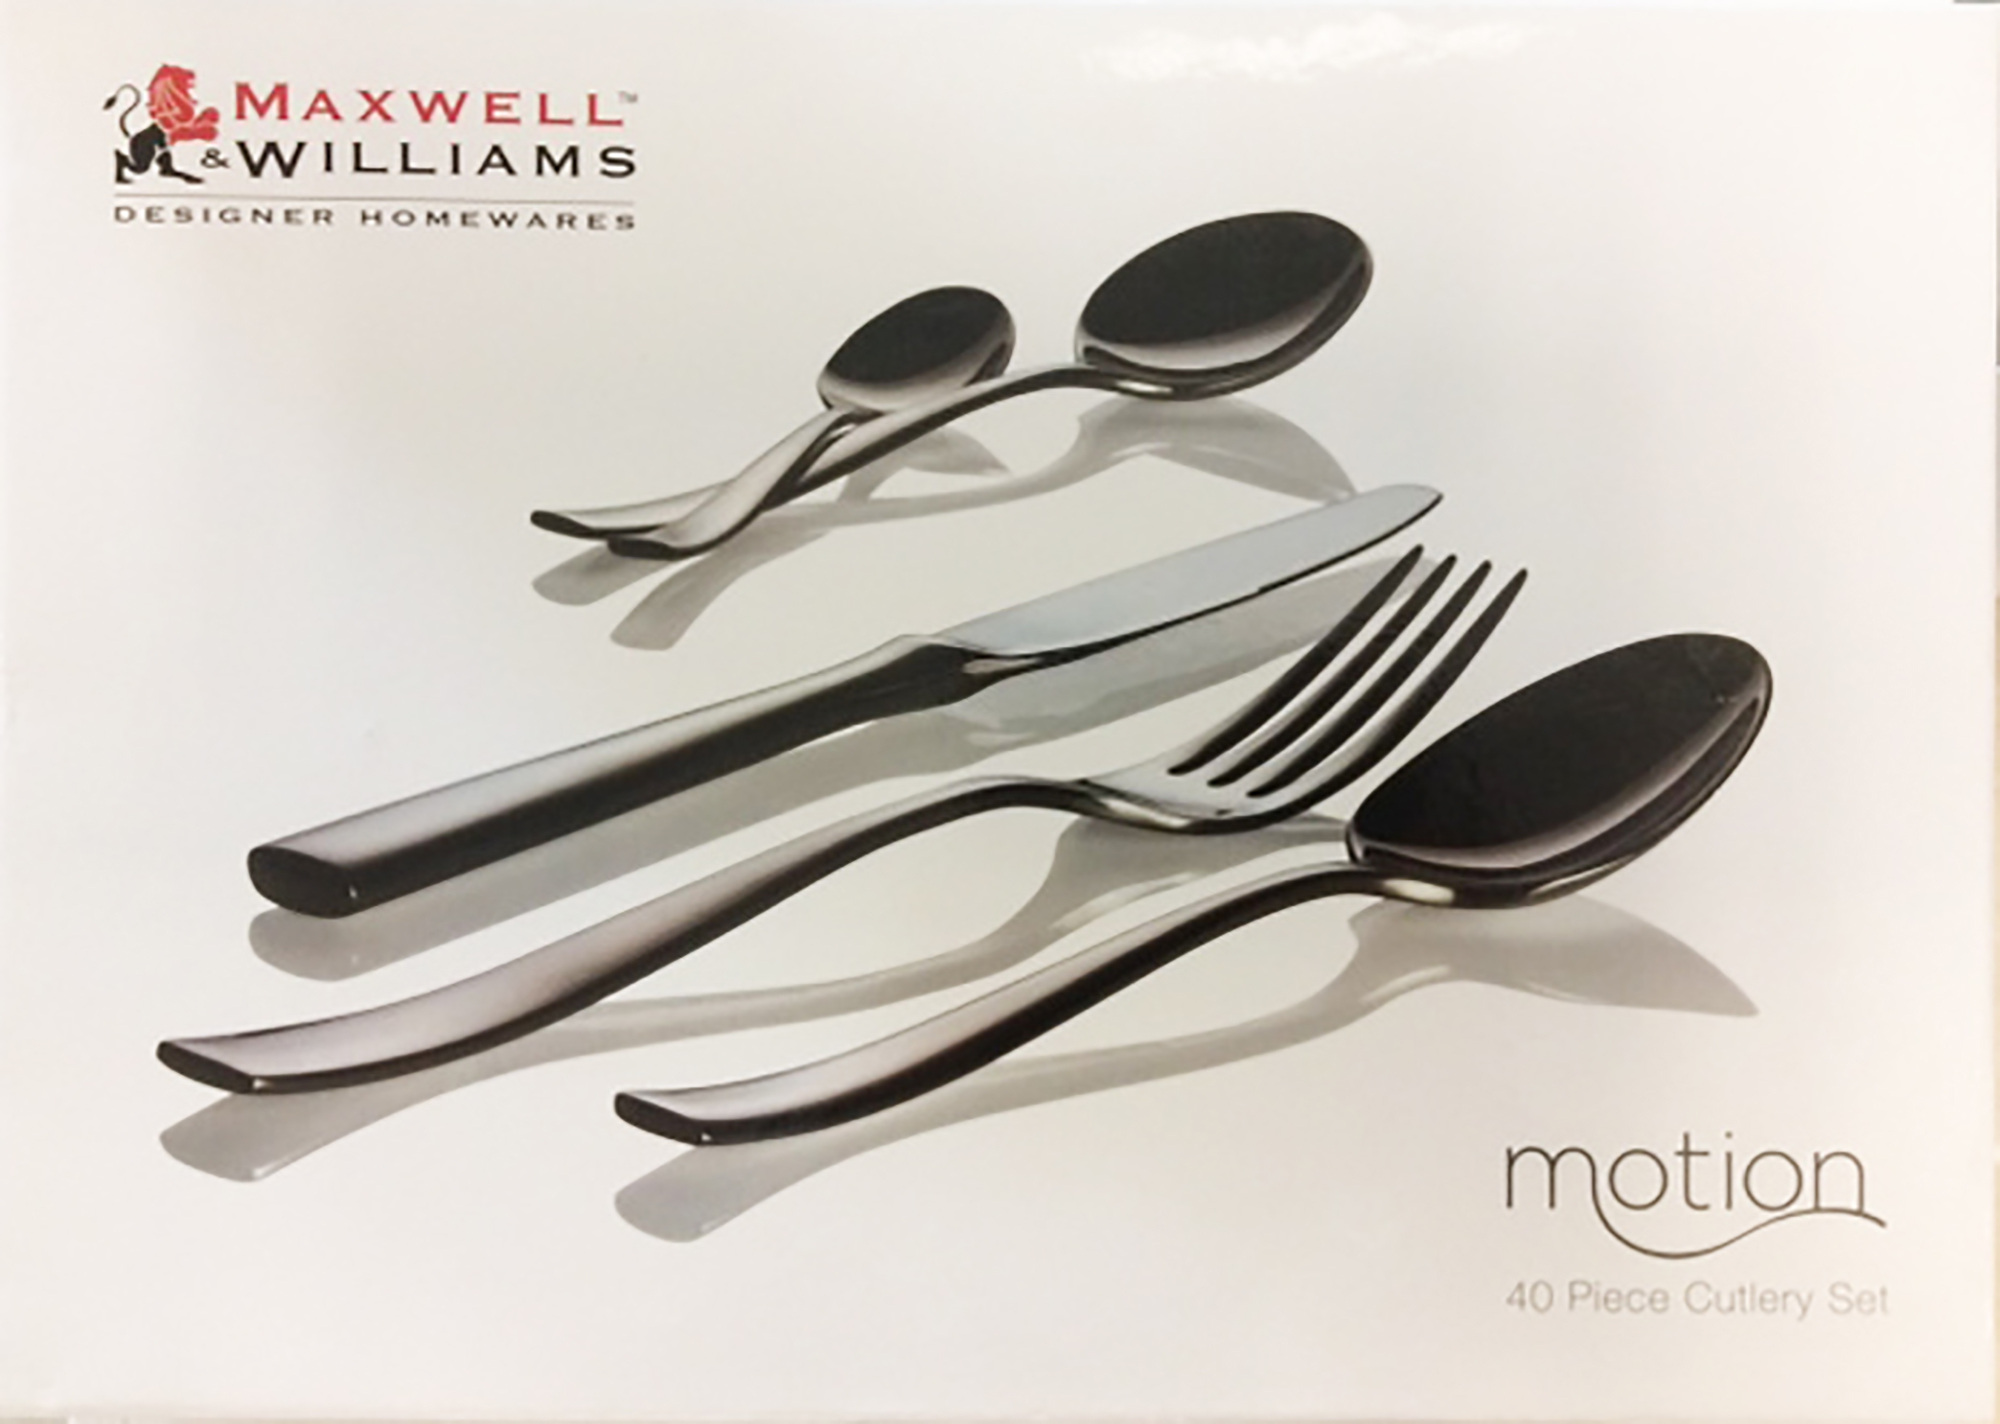 Maxwell & Williams Motion 40Pc Cutlery Set Gift Boxed